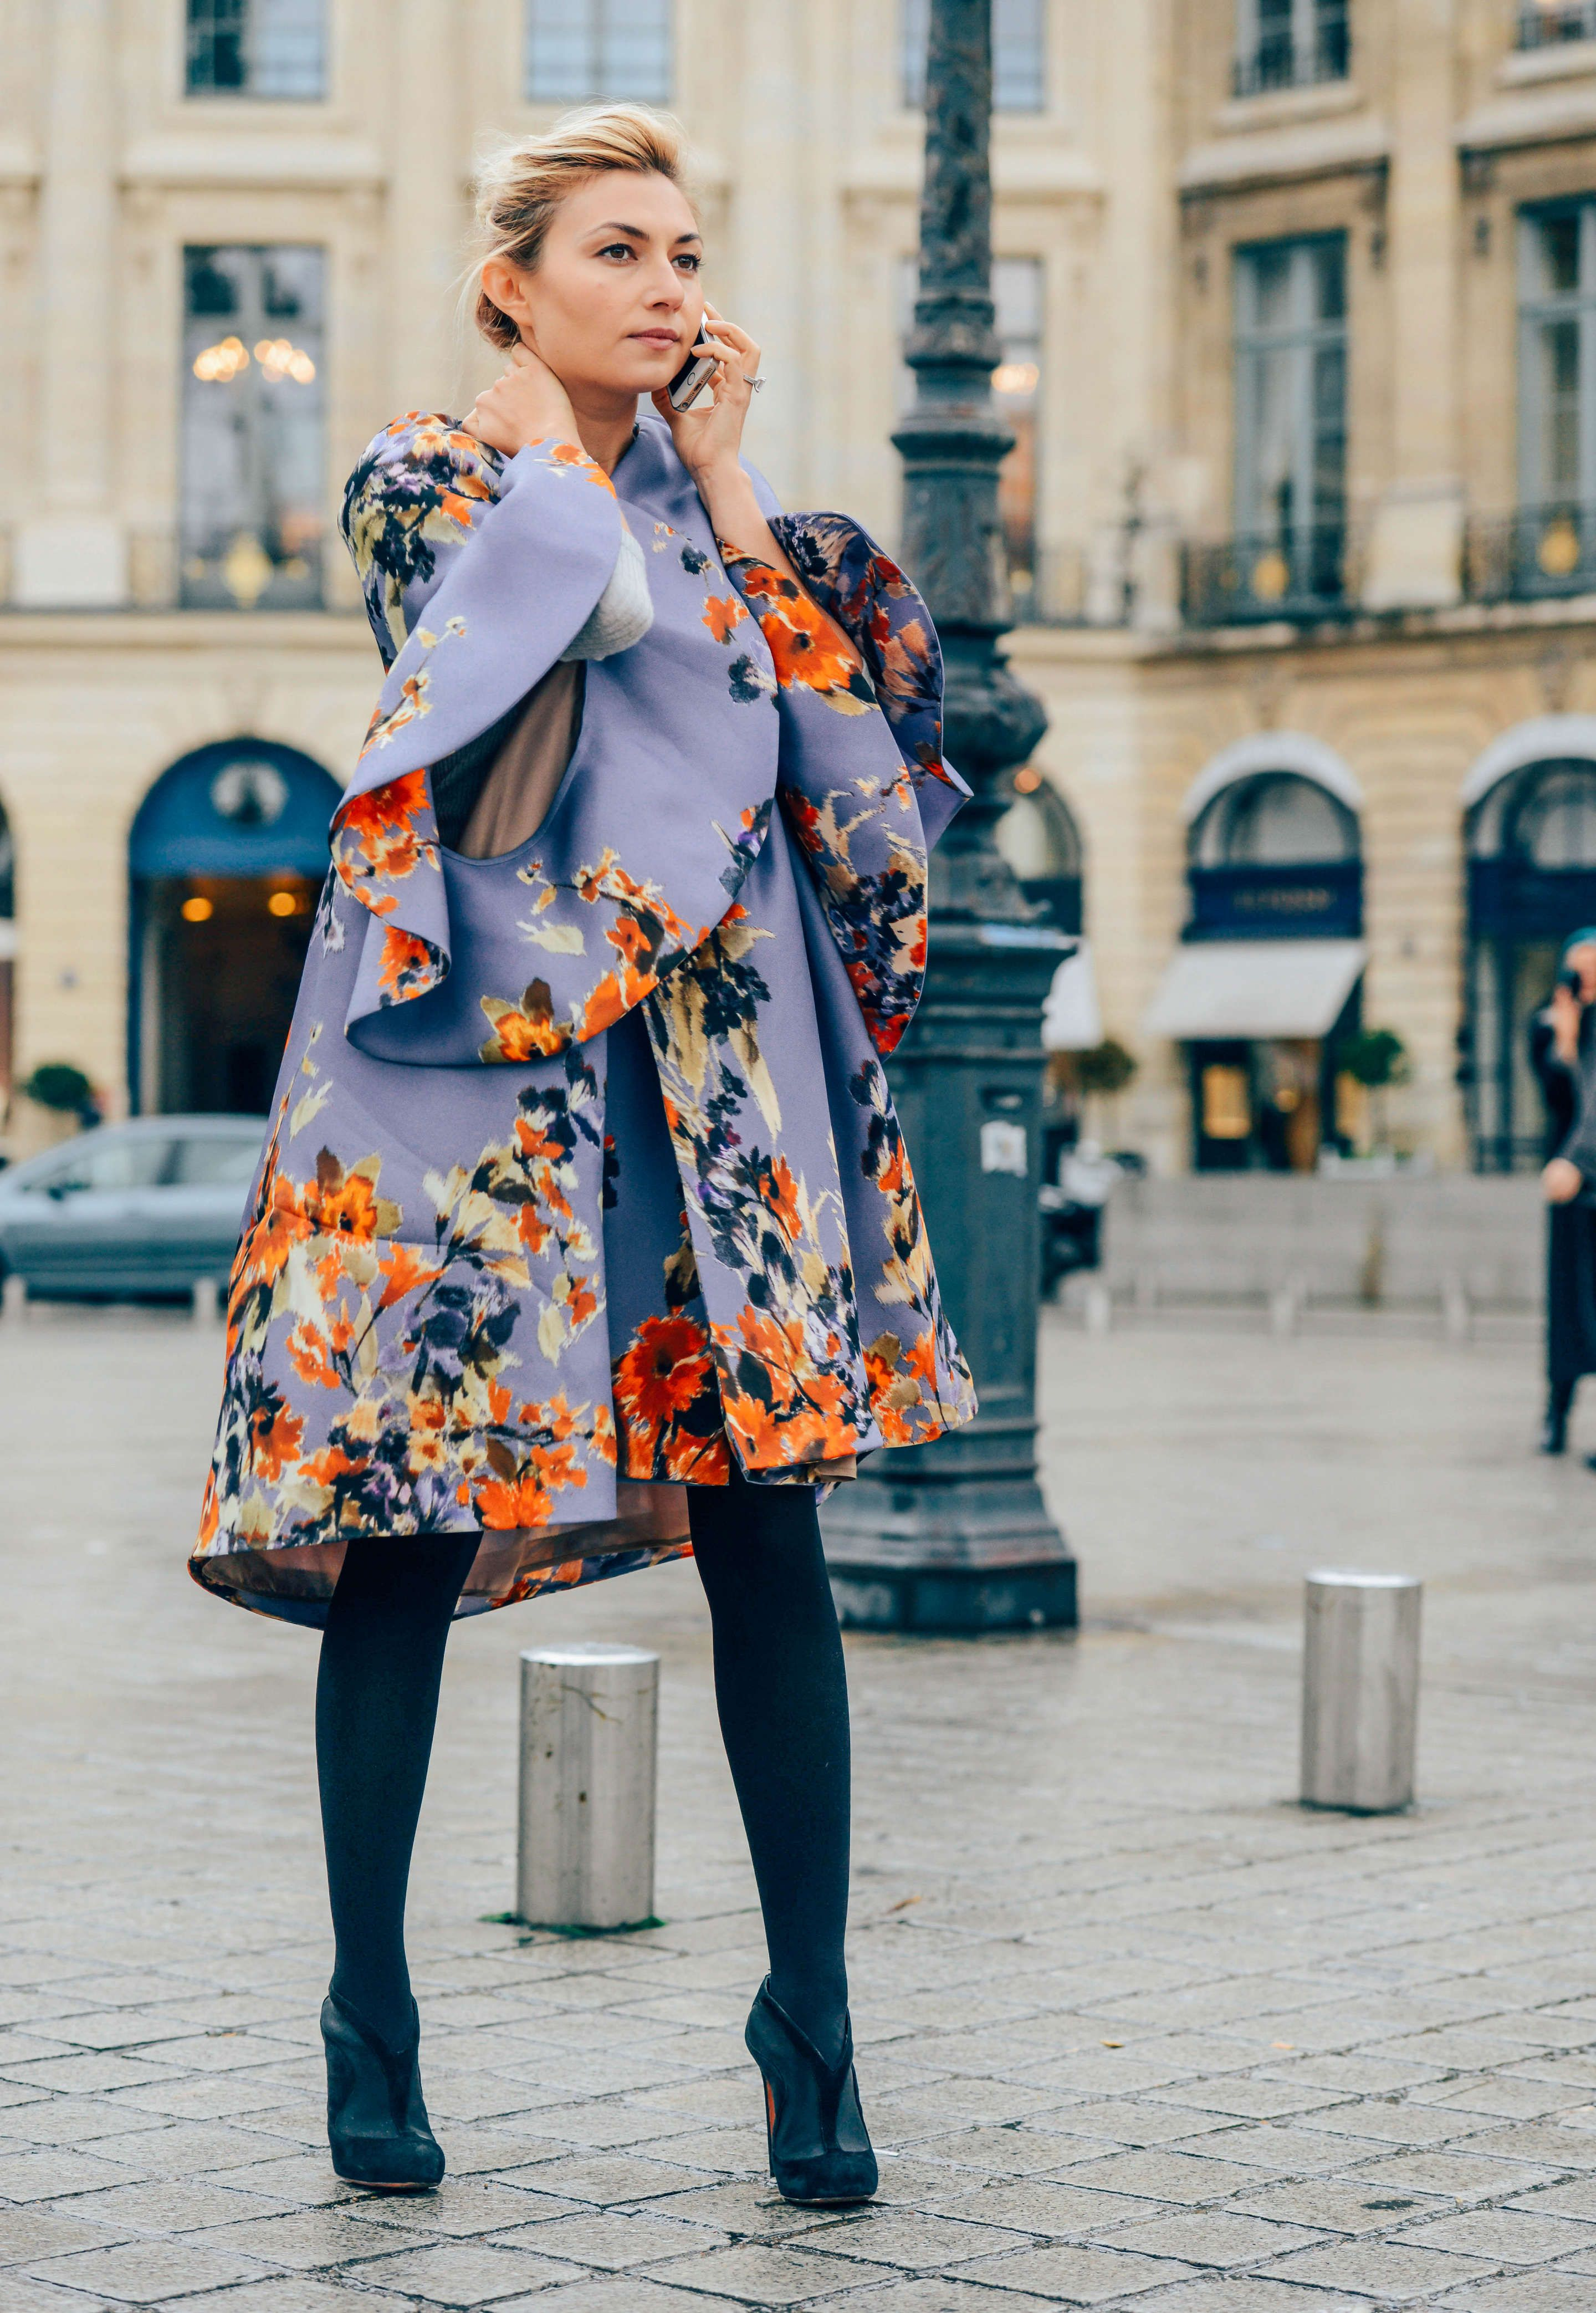 You don't always have to wear black this winter... add a fun and vibrant coat to your closet this season.